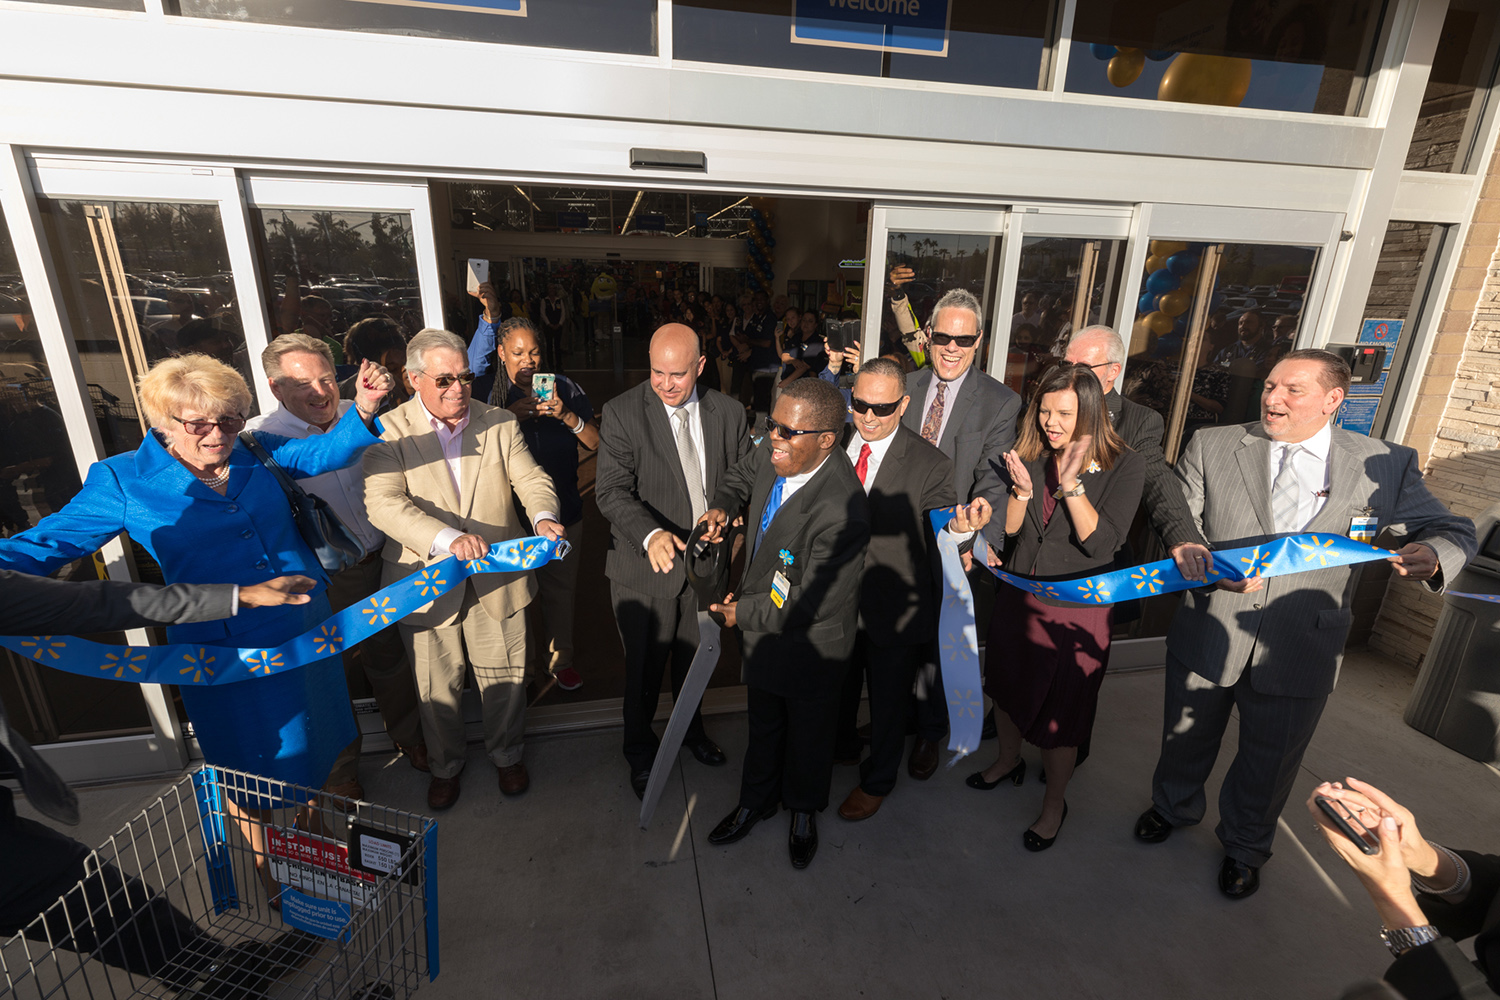 Done Deals Grand Opening Of Walmart Supercenter Marks Reinvestment